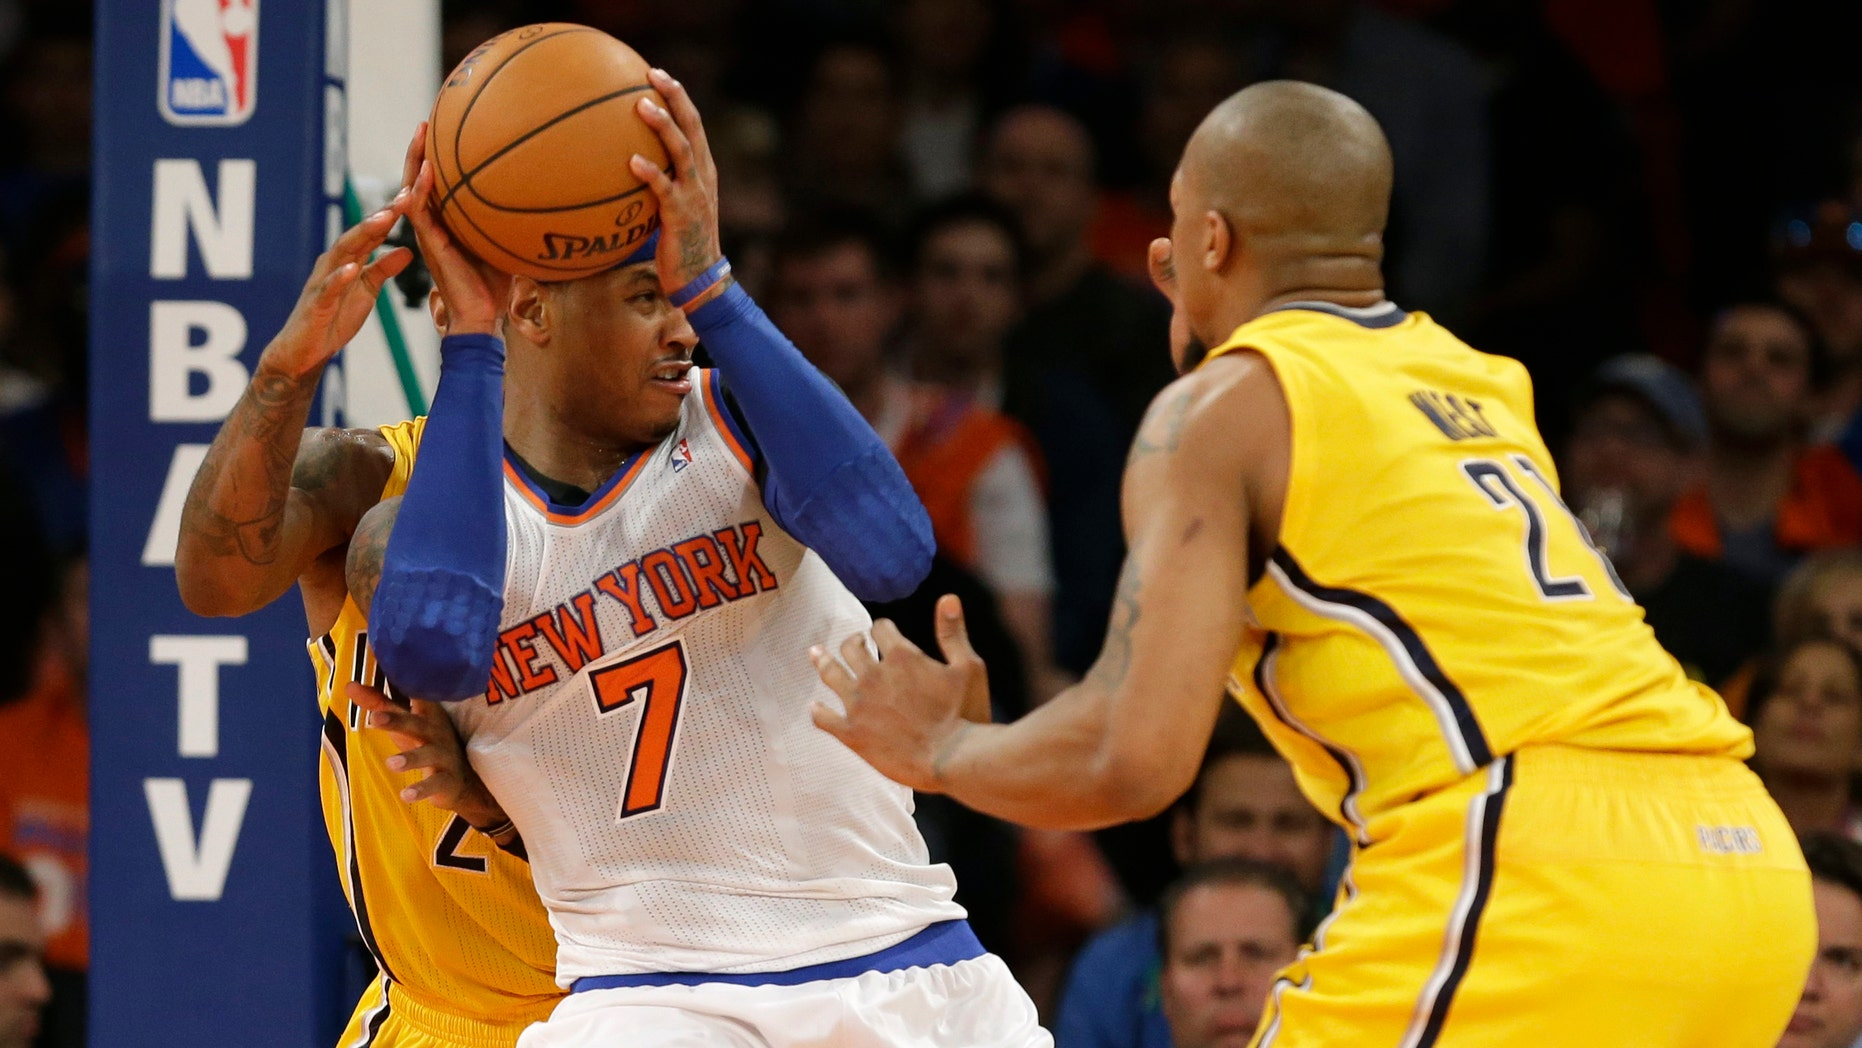 Indiana Pacers forward Paul George, left, and Pacers forward David West (21) in the second quarter of Game 1 of their second-round NBA basketball series at Madison Square Garden in New York, Sunday, May 5, 2013.  (AP Photo/Kathy Willens)